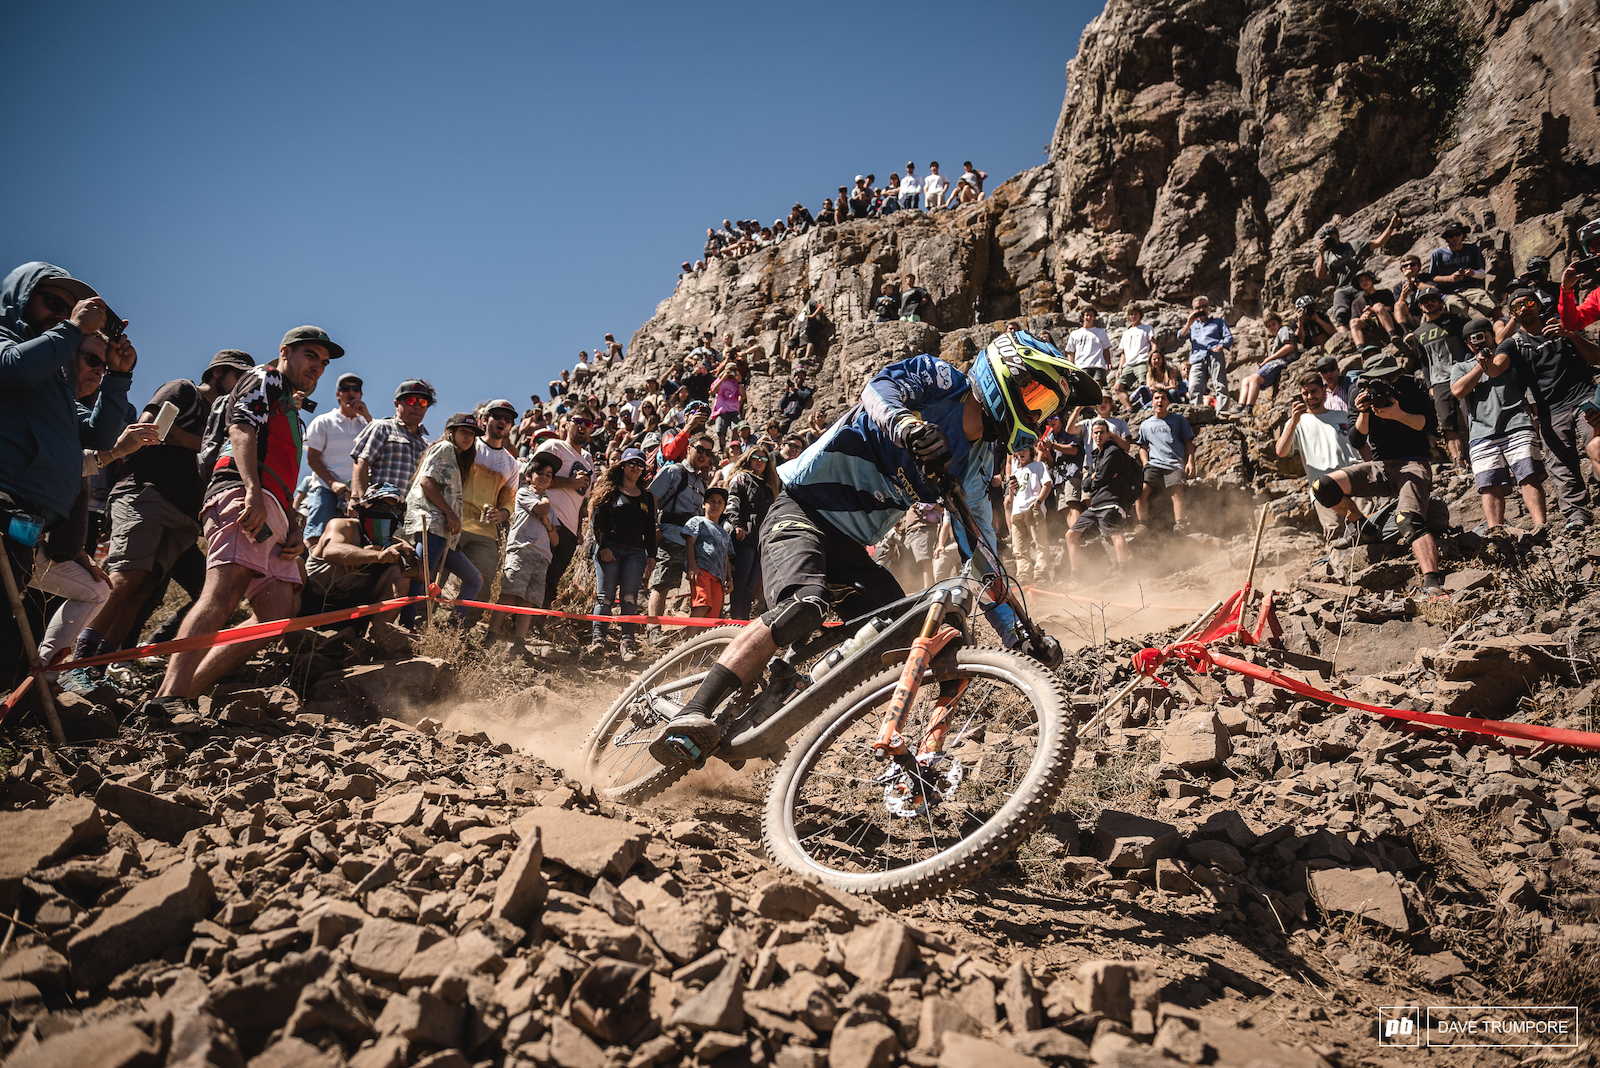 The last time the EWS visited Chile Martin Maes finished 2nd. This weekend he repeated that performance.